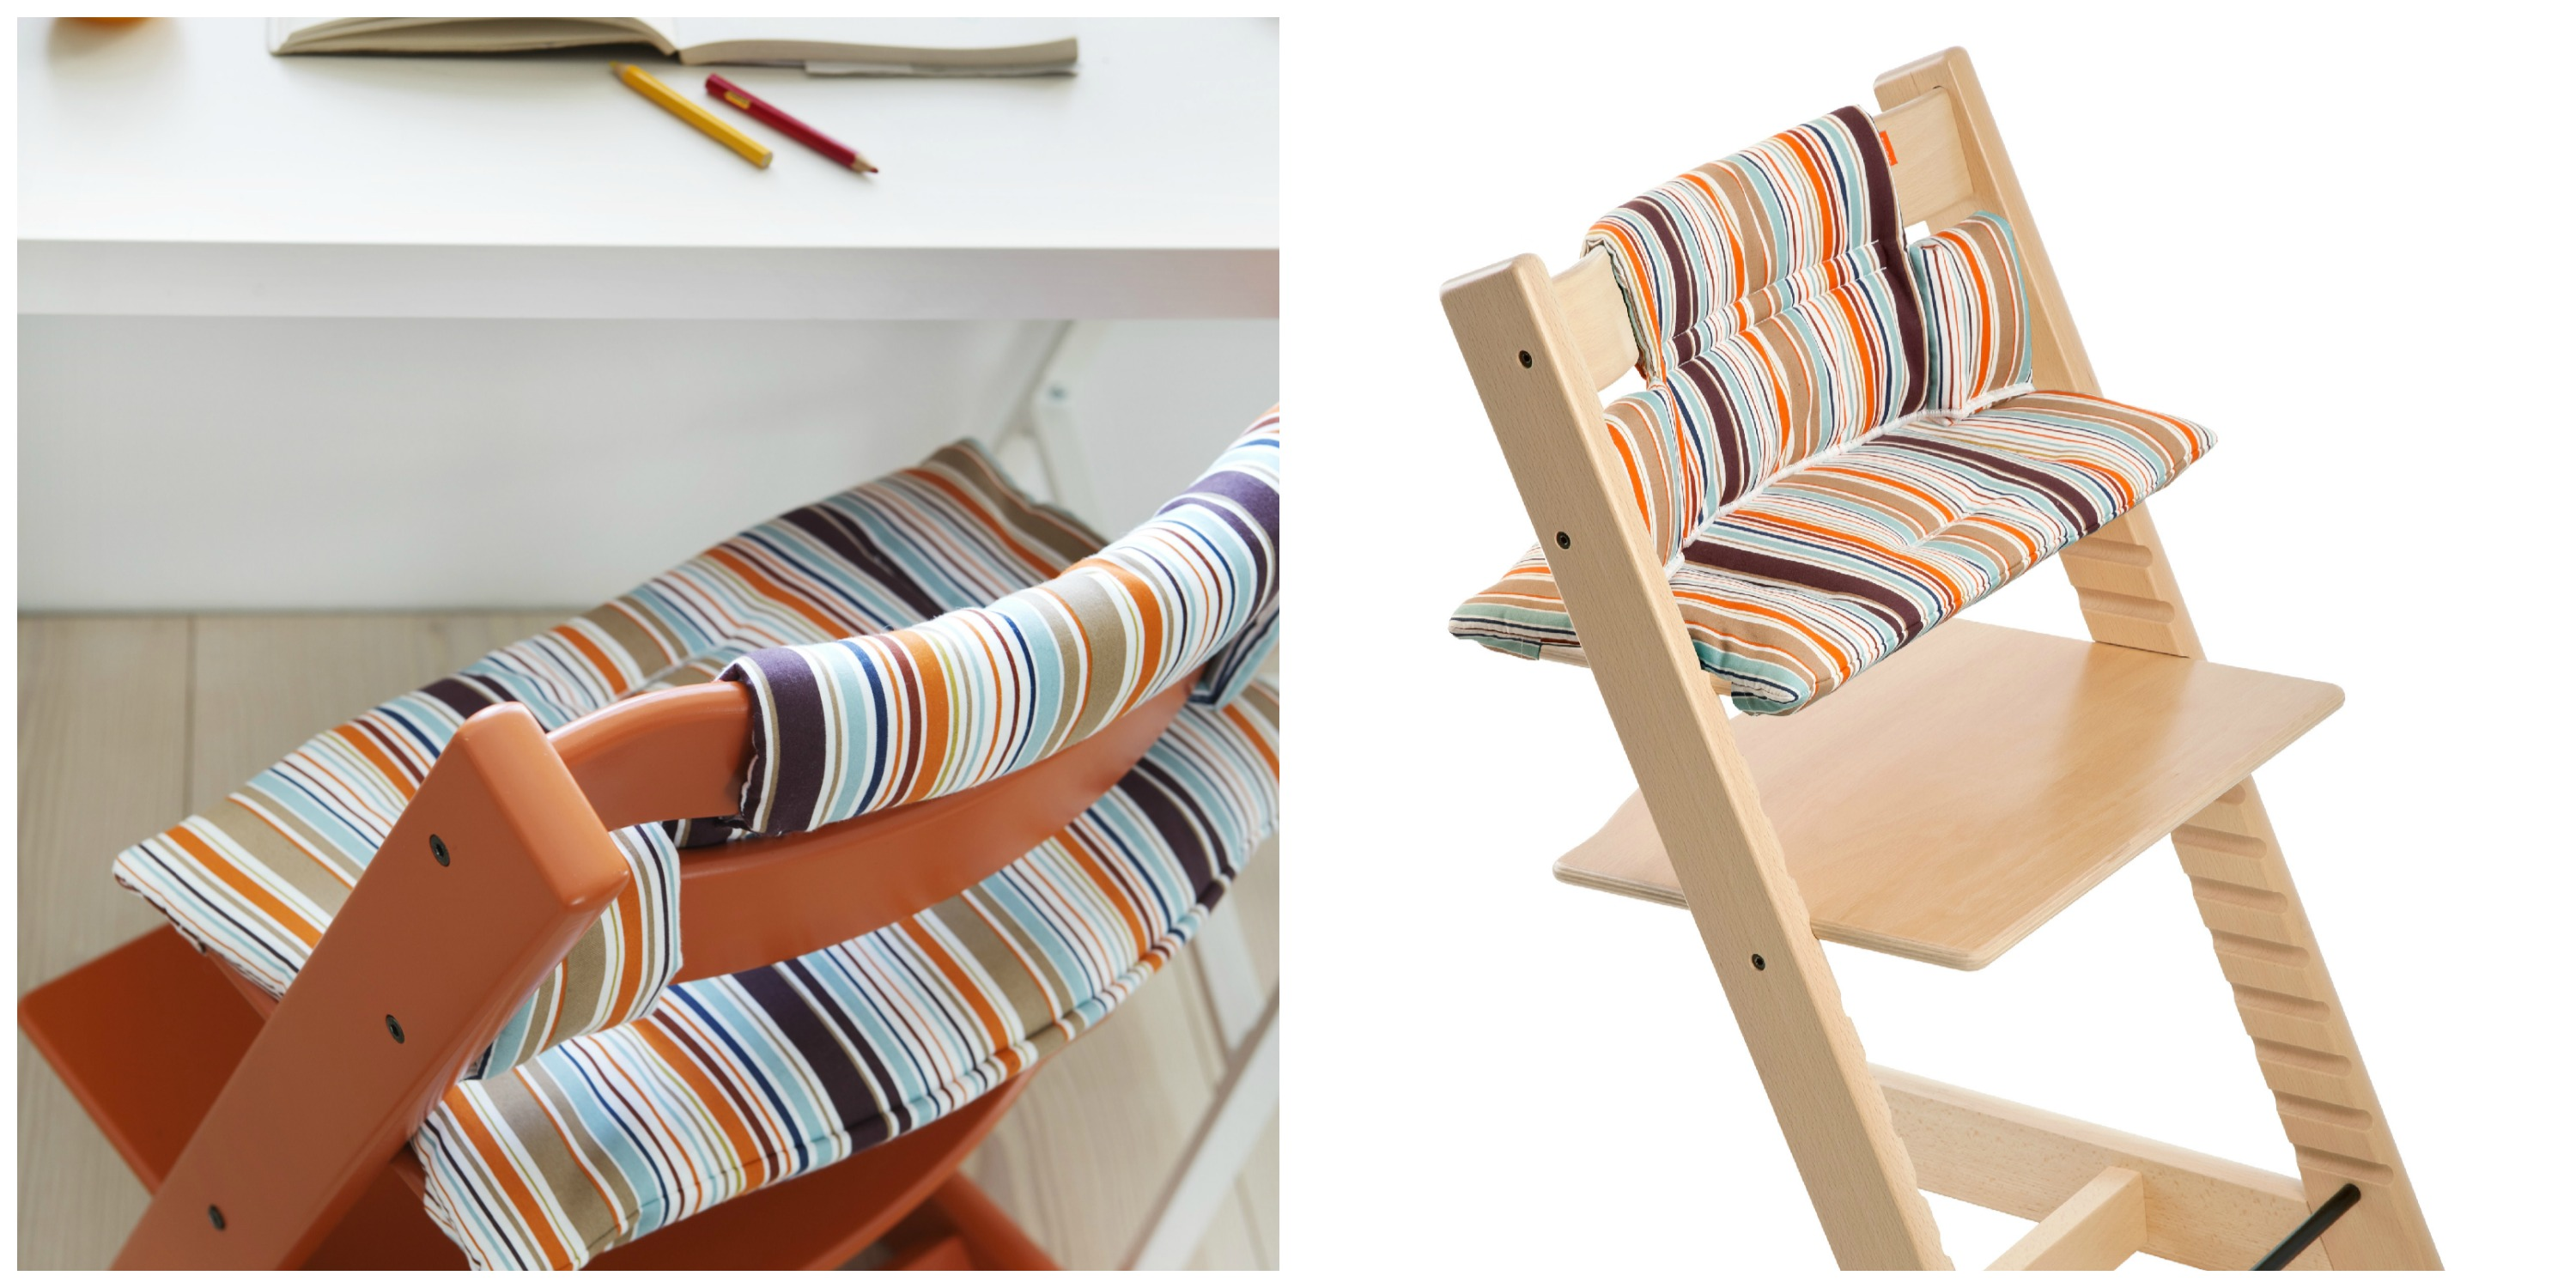 NEW Stokke Tripp Trapp colours and cushions released